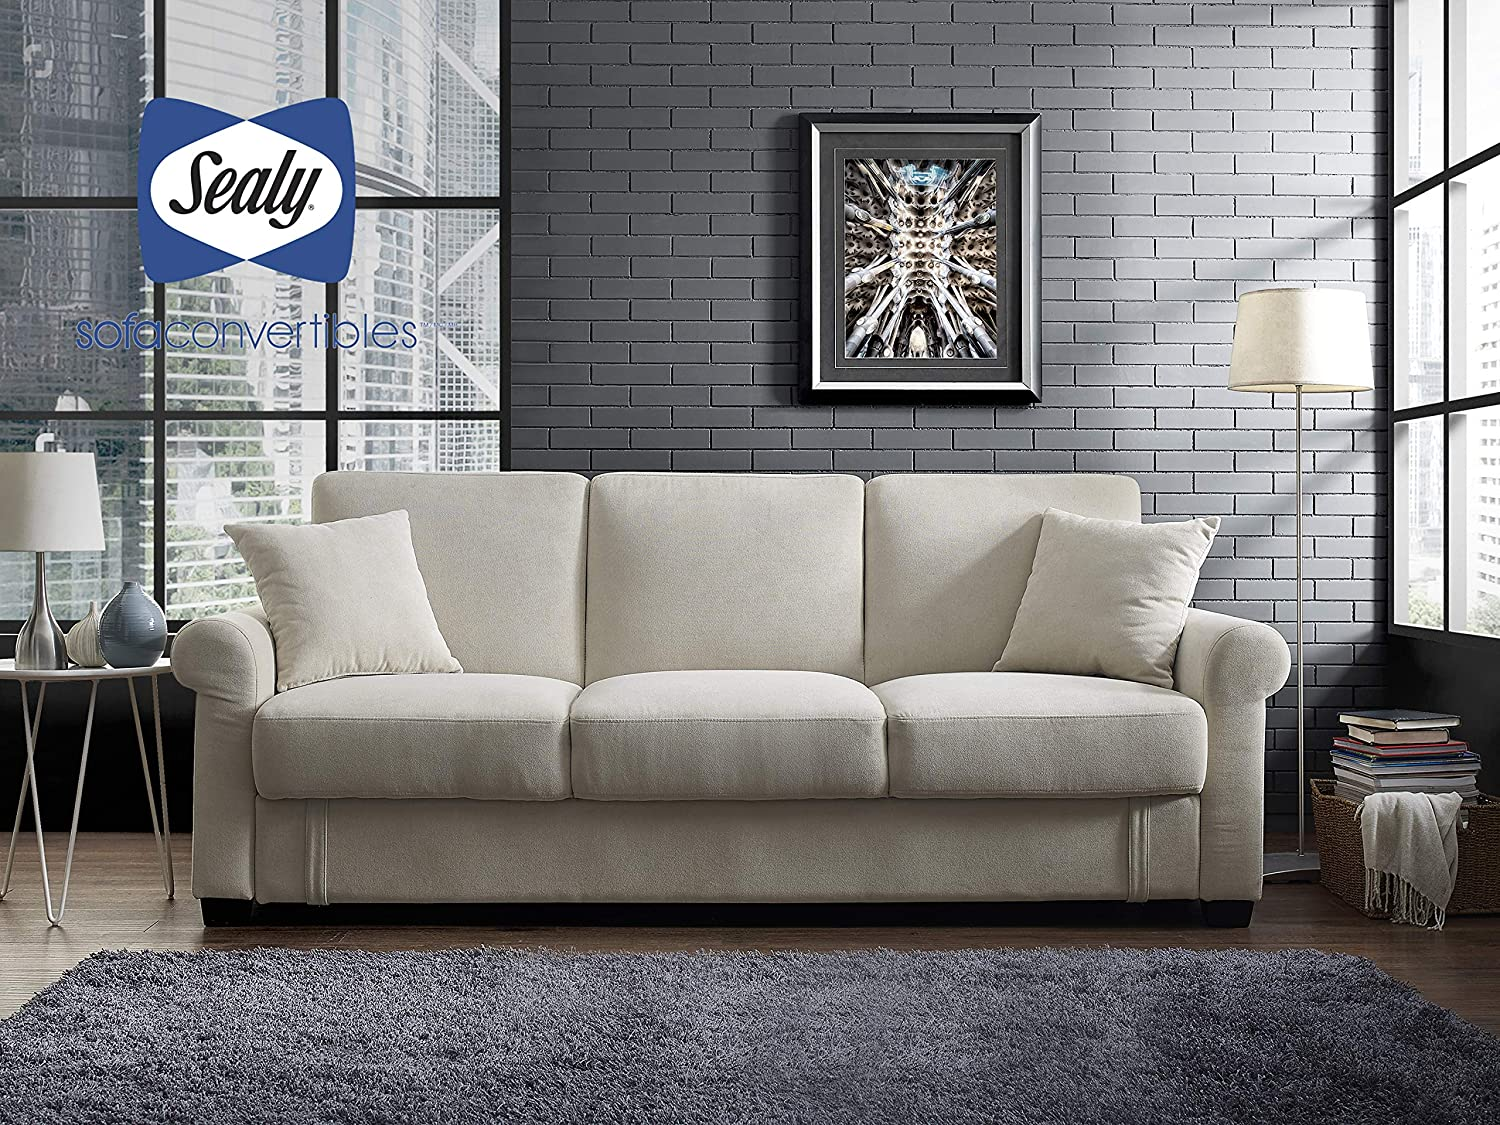 Tremendous Sealy St Anne Sofa Convertible With Storage By Sealy Cozy Home Interior And Landscaping Oversignezvosmurscom